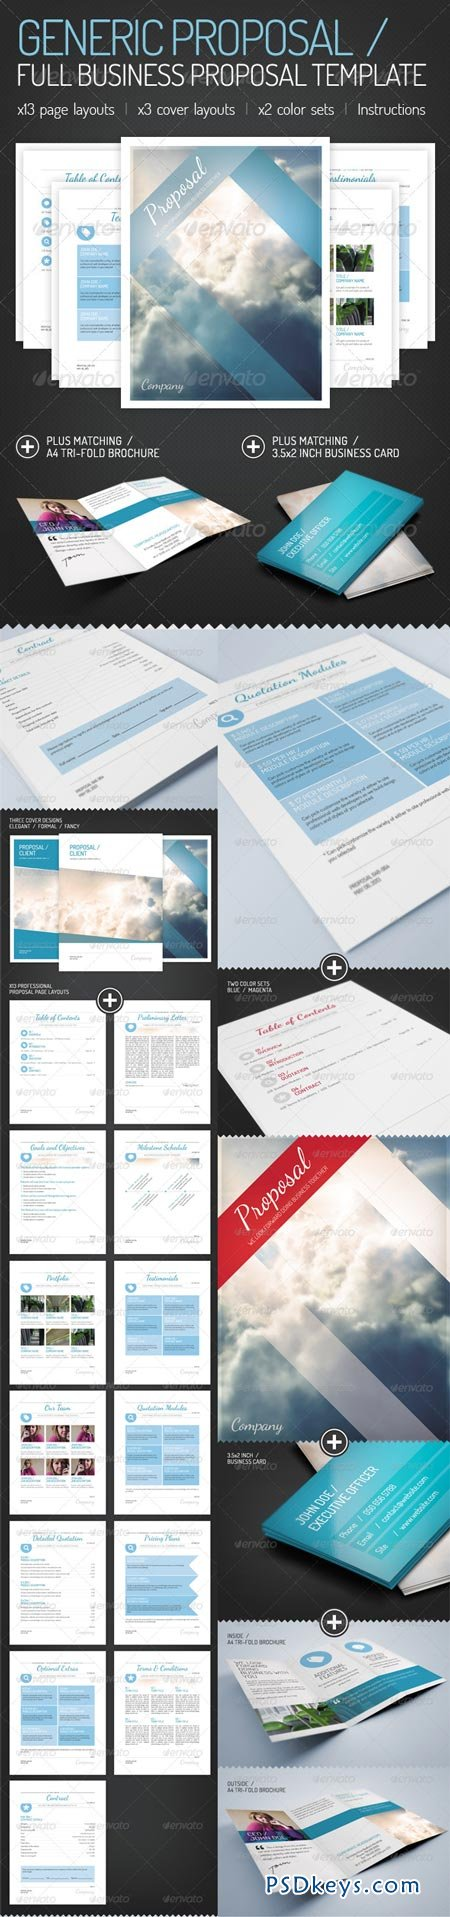 Charmant Generic Proposal   Full Business Proposal Template 2721064